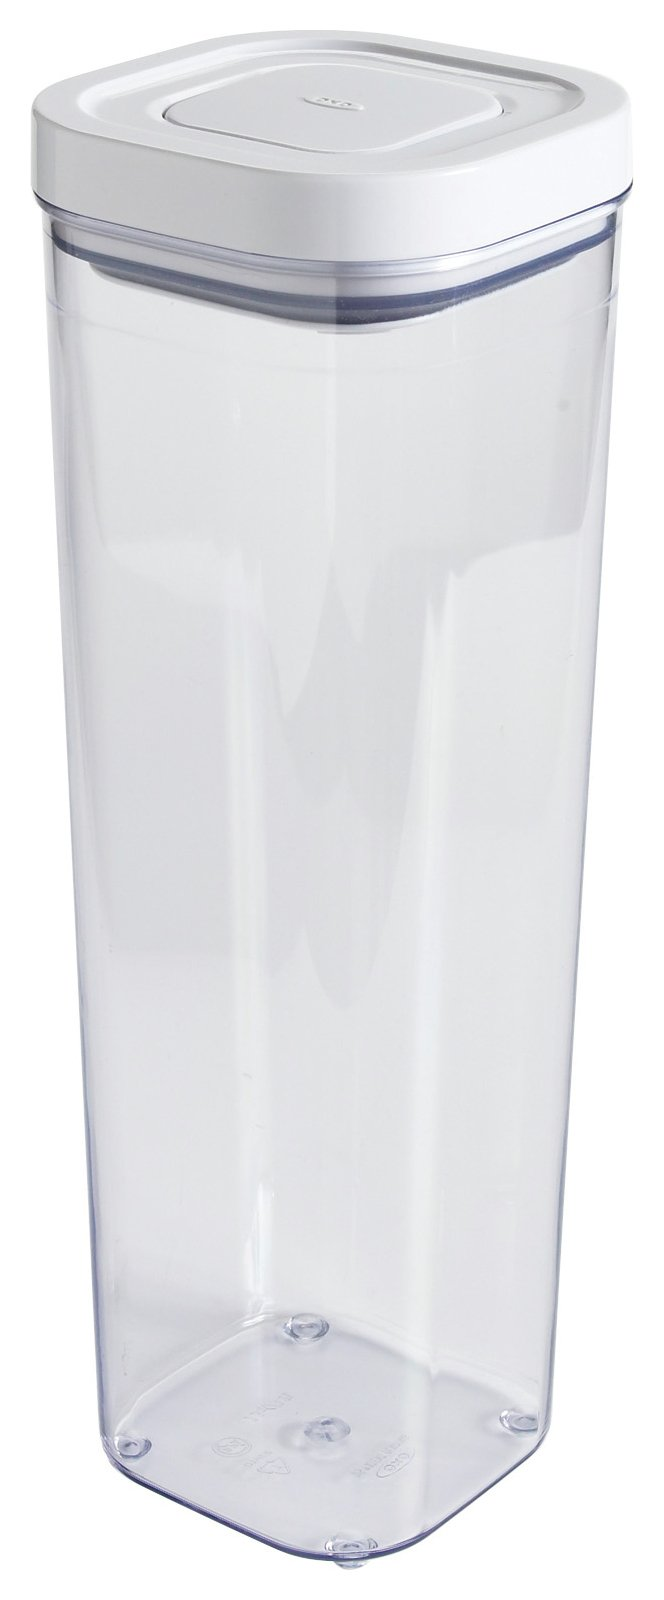 OXO SoftWorks Pop Small Square Container 2.2L